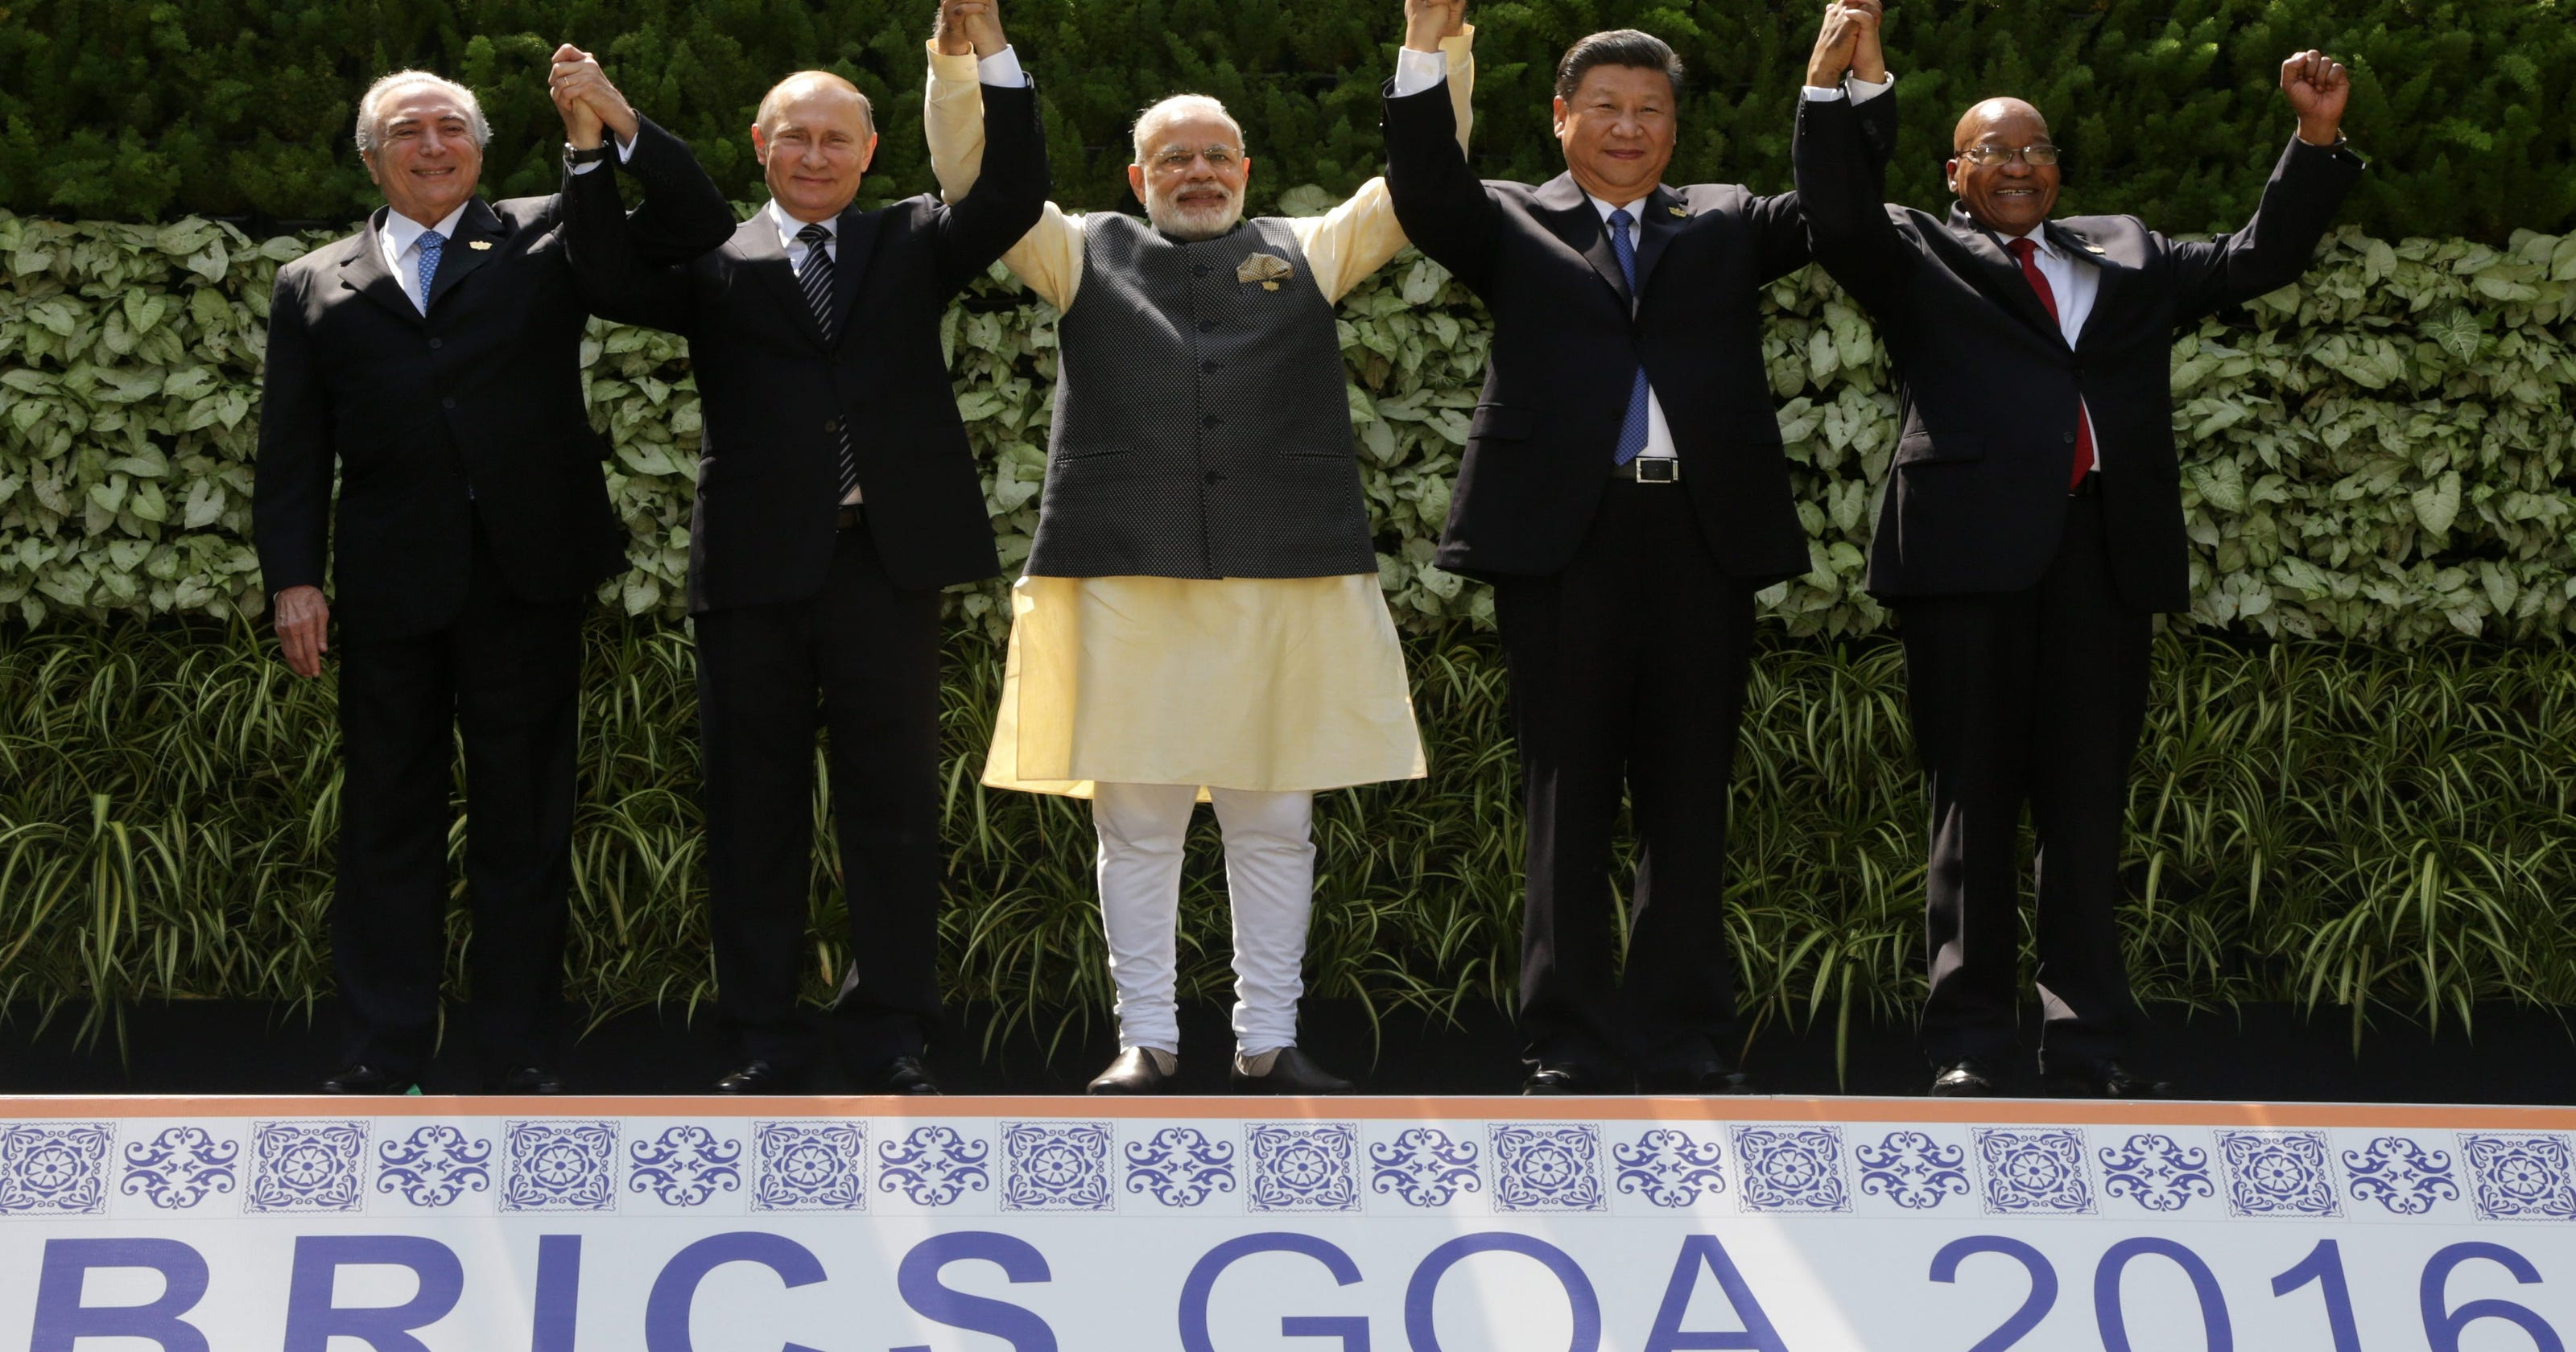 Brics Leaders Vow To Speed Global Recovery Fight Terrorism